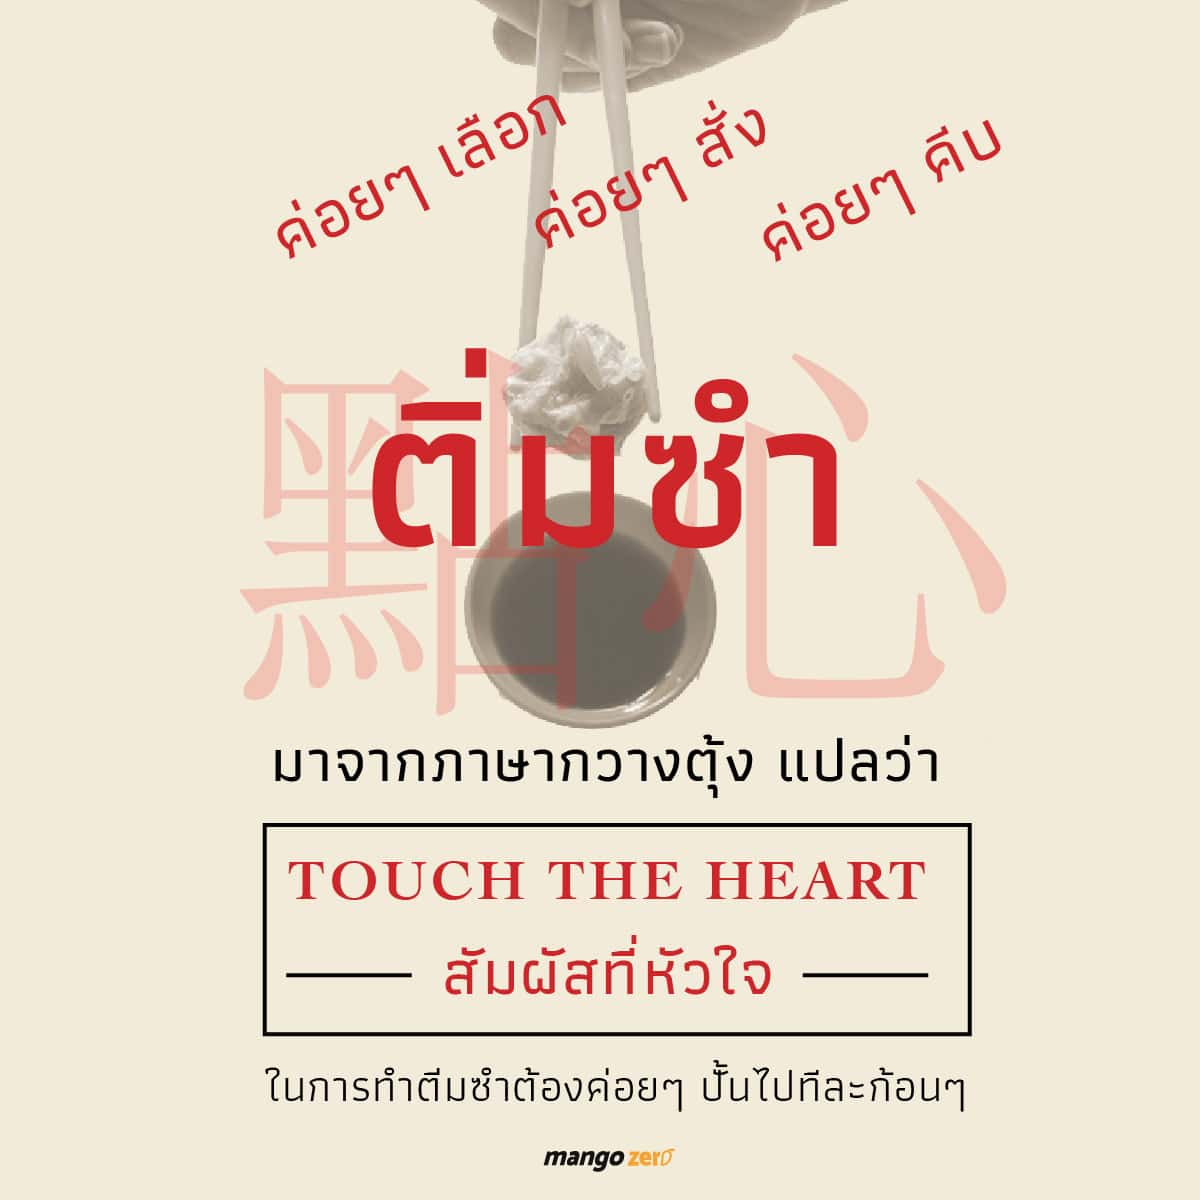 touch-the-heart-of-dimsum5